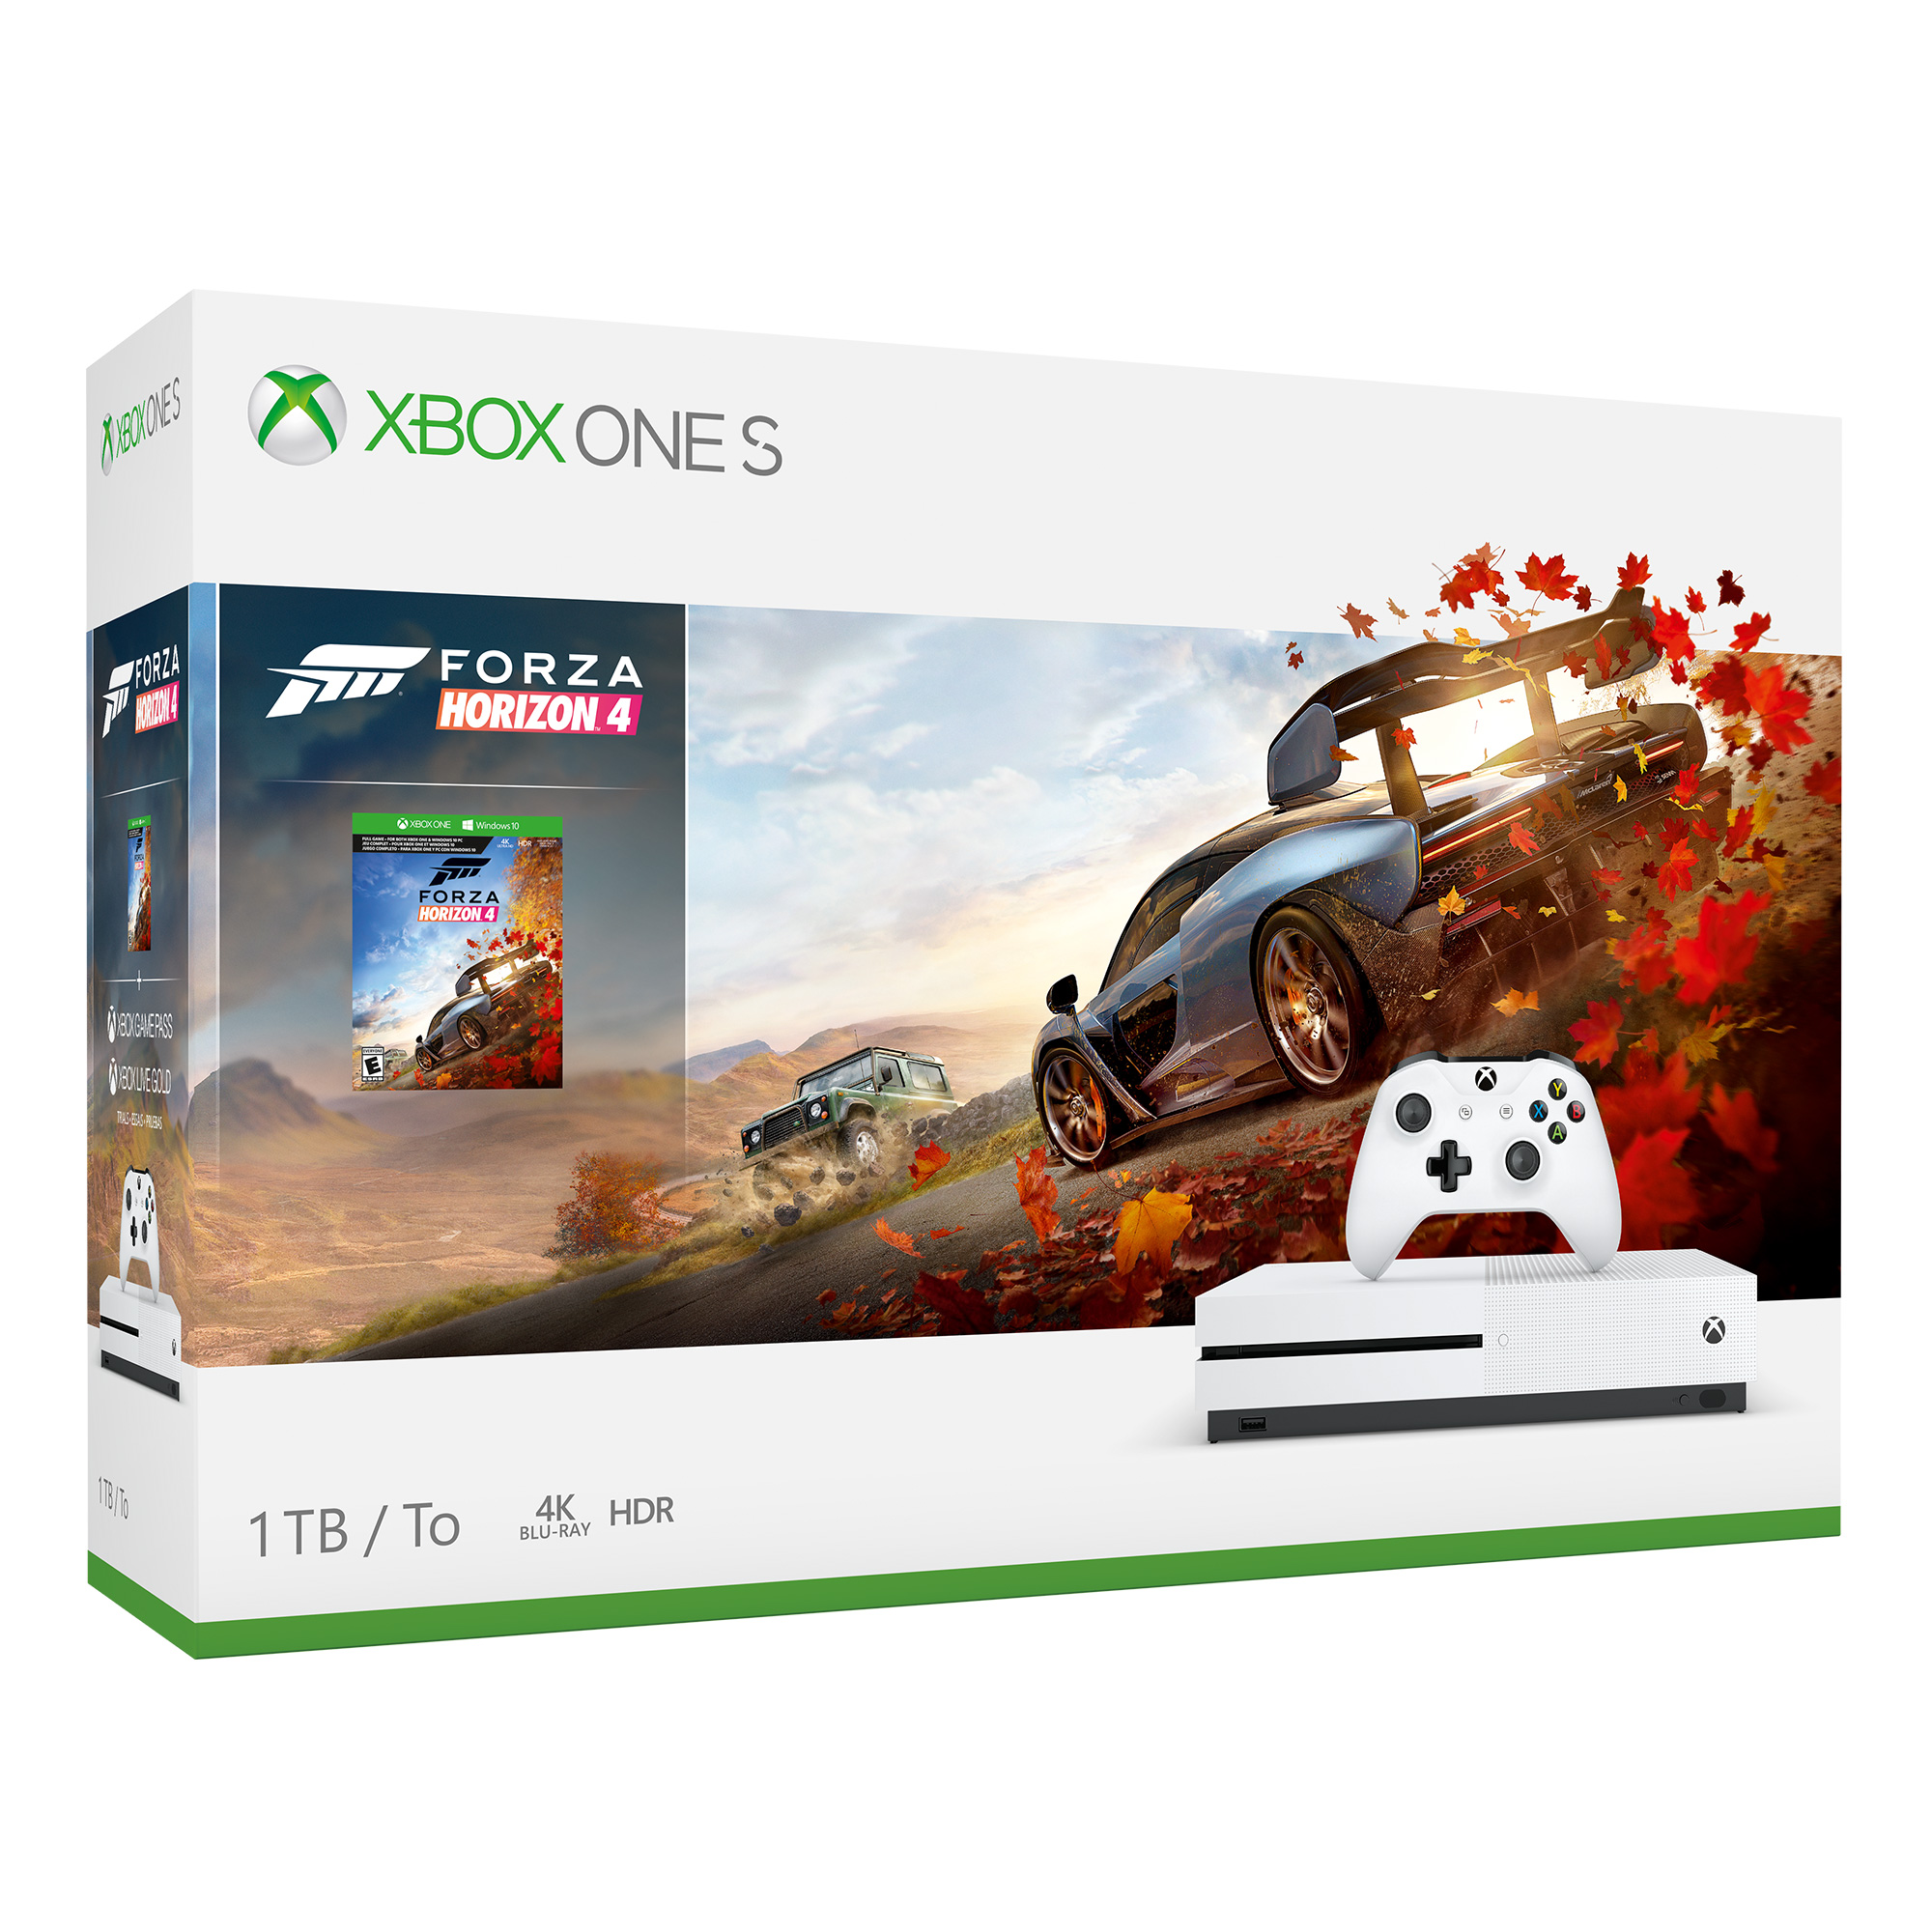 Microsoft Xbox One S 1TB Forza Horizon 4 Bundle, White, 234-00552